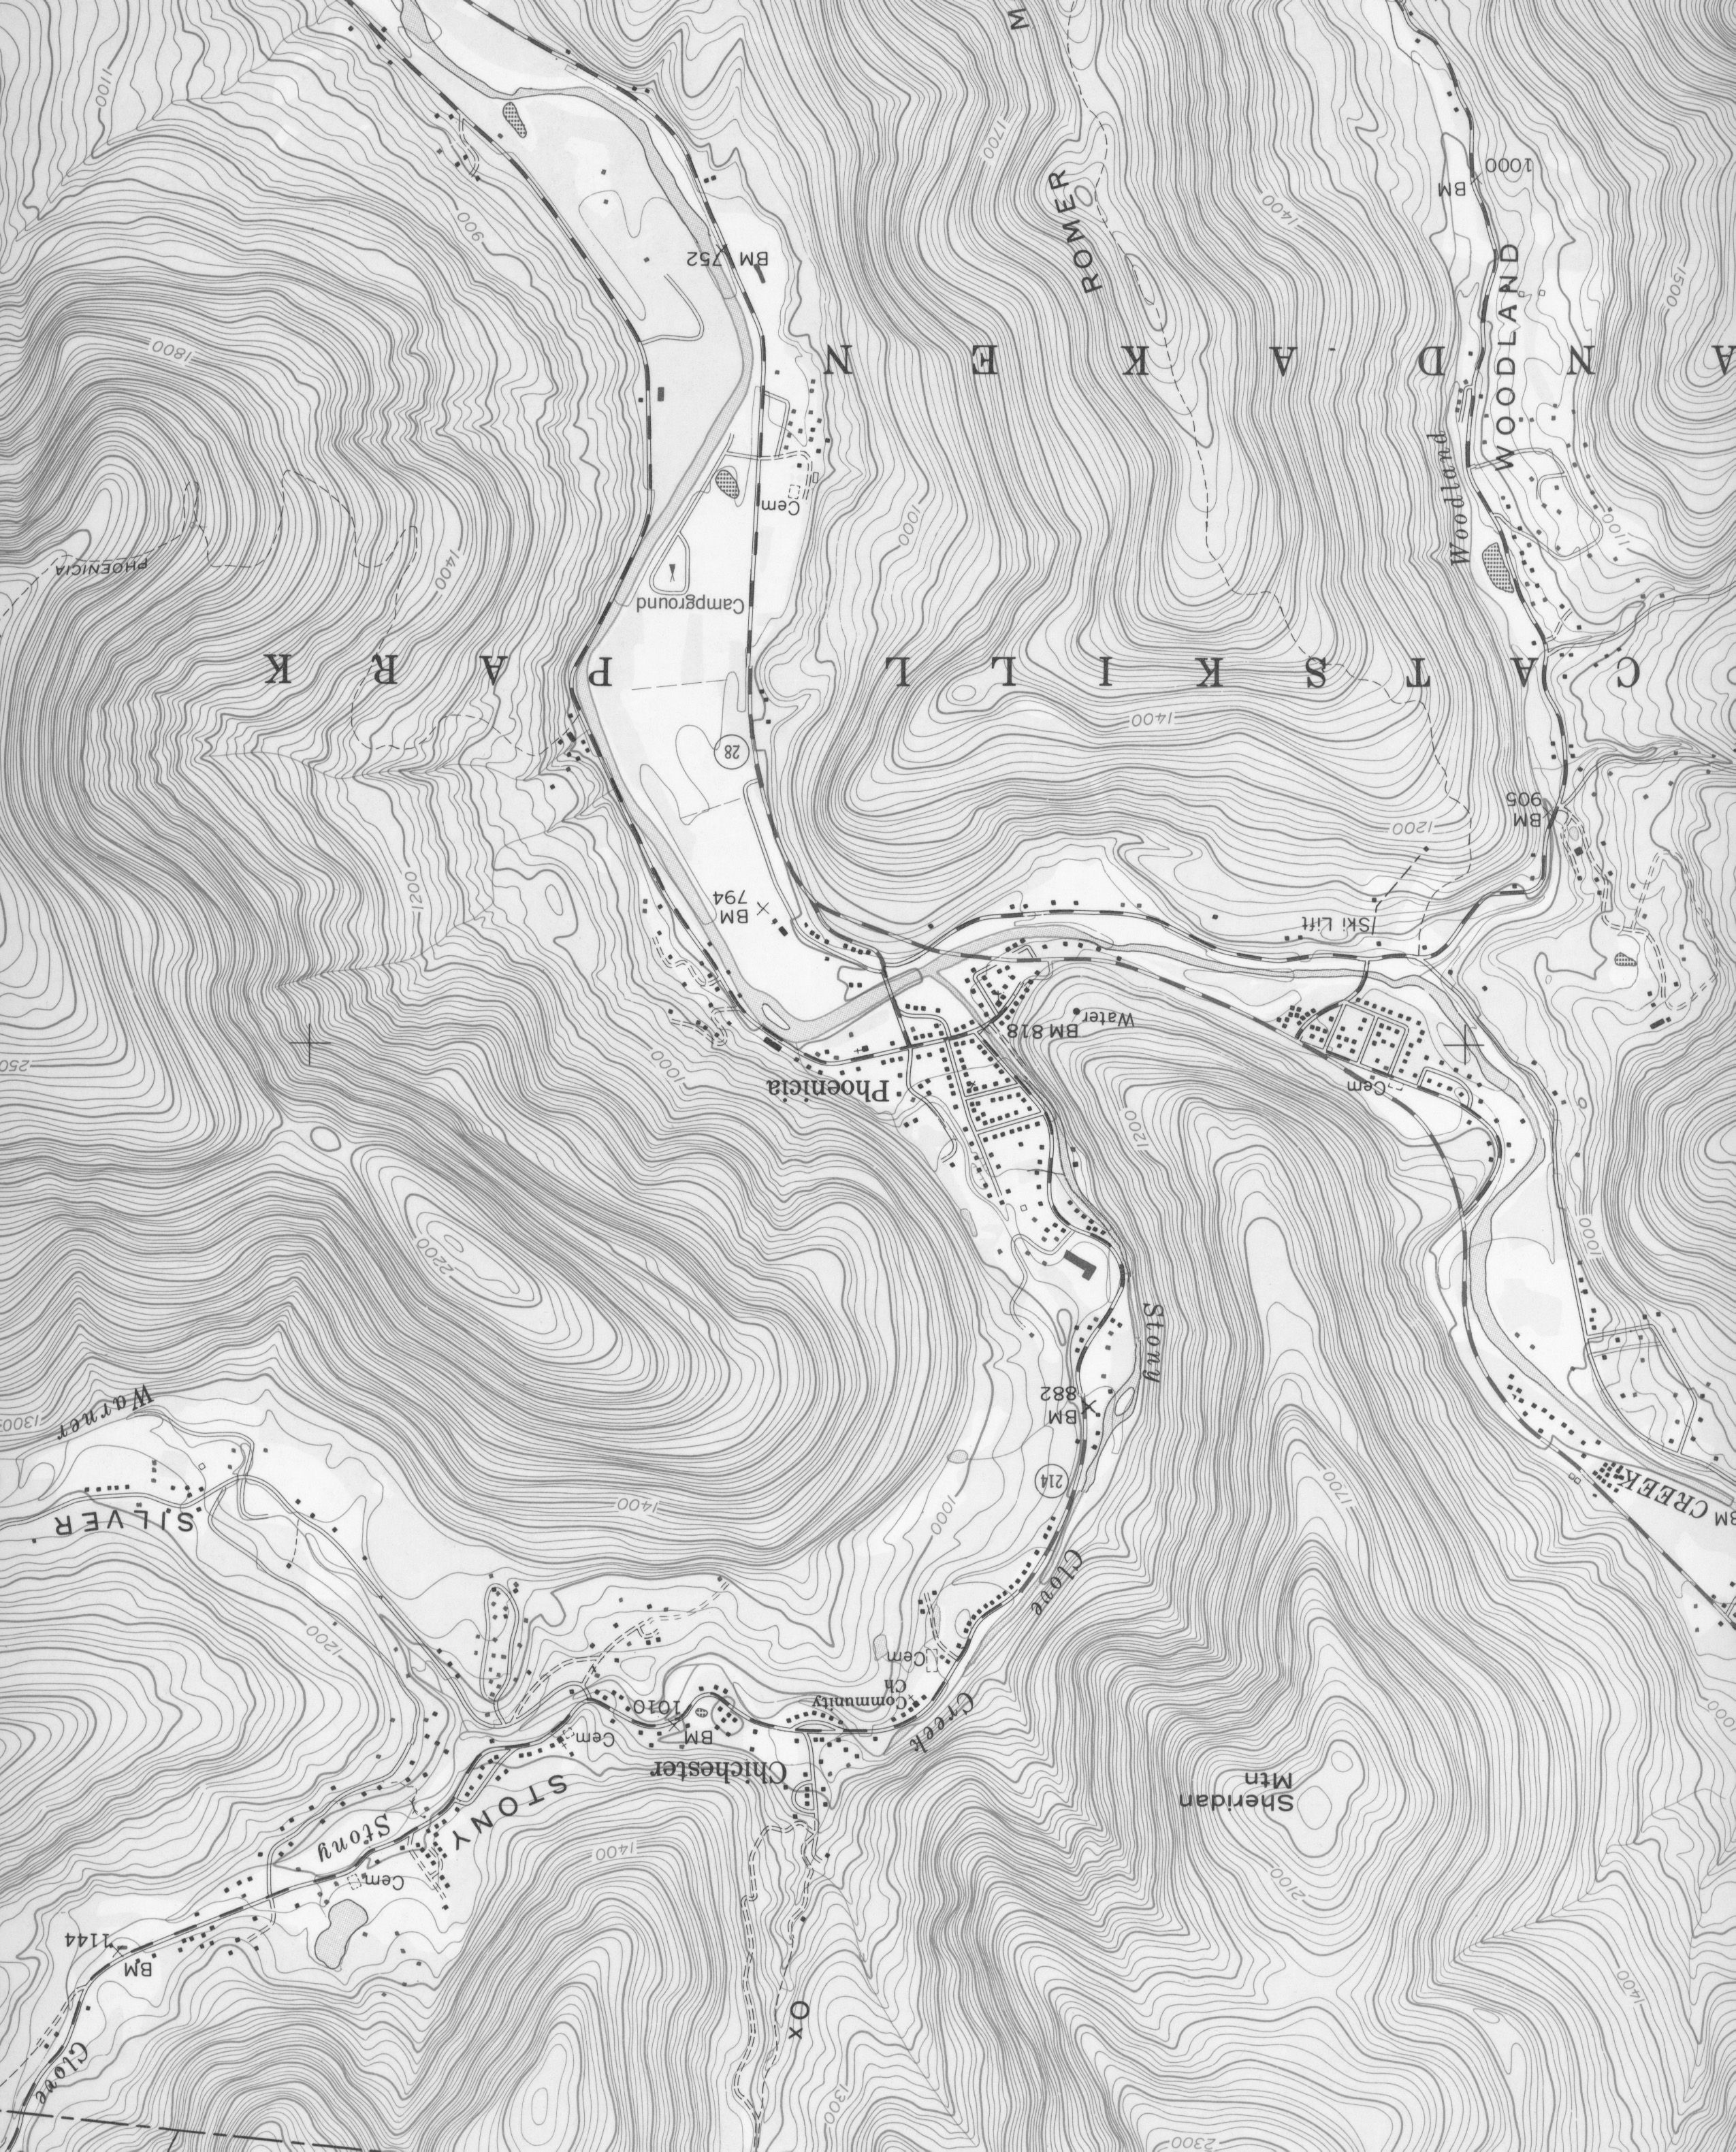 Here S An Example Of A Topographic Map A Section Of The 7